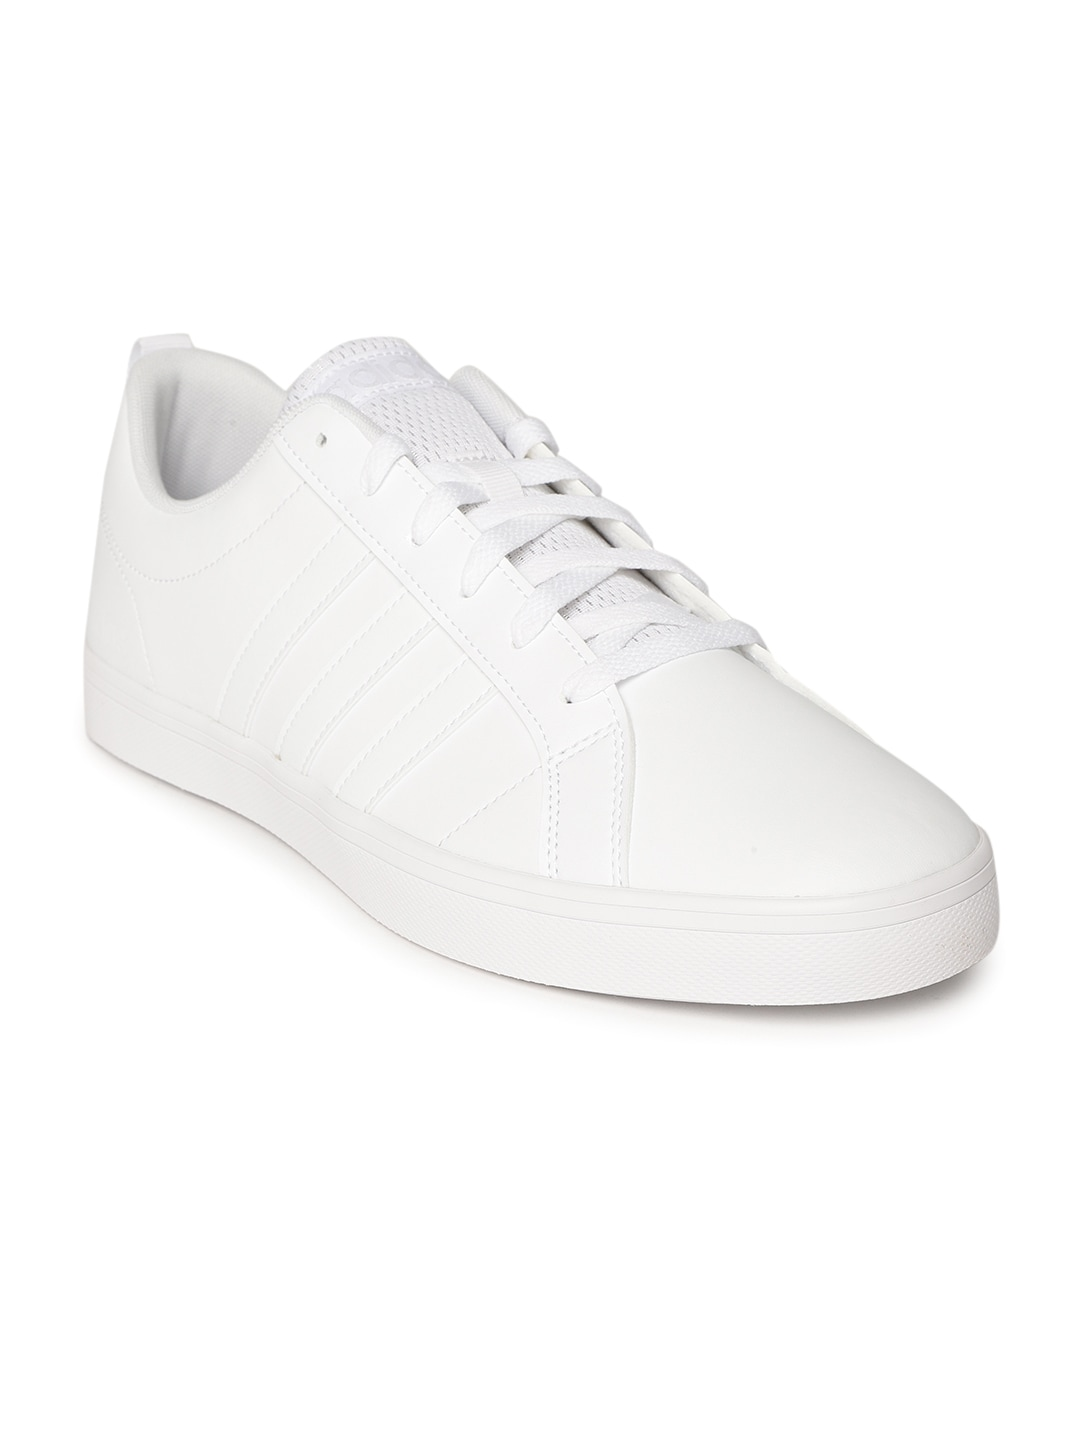 Adidas White Casual Shoes